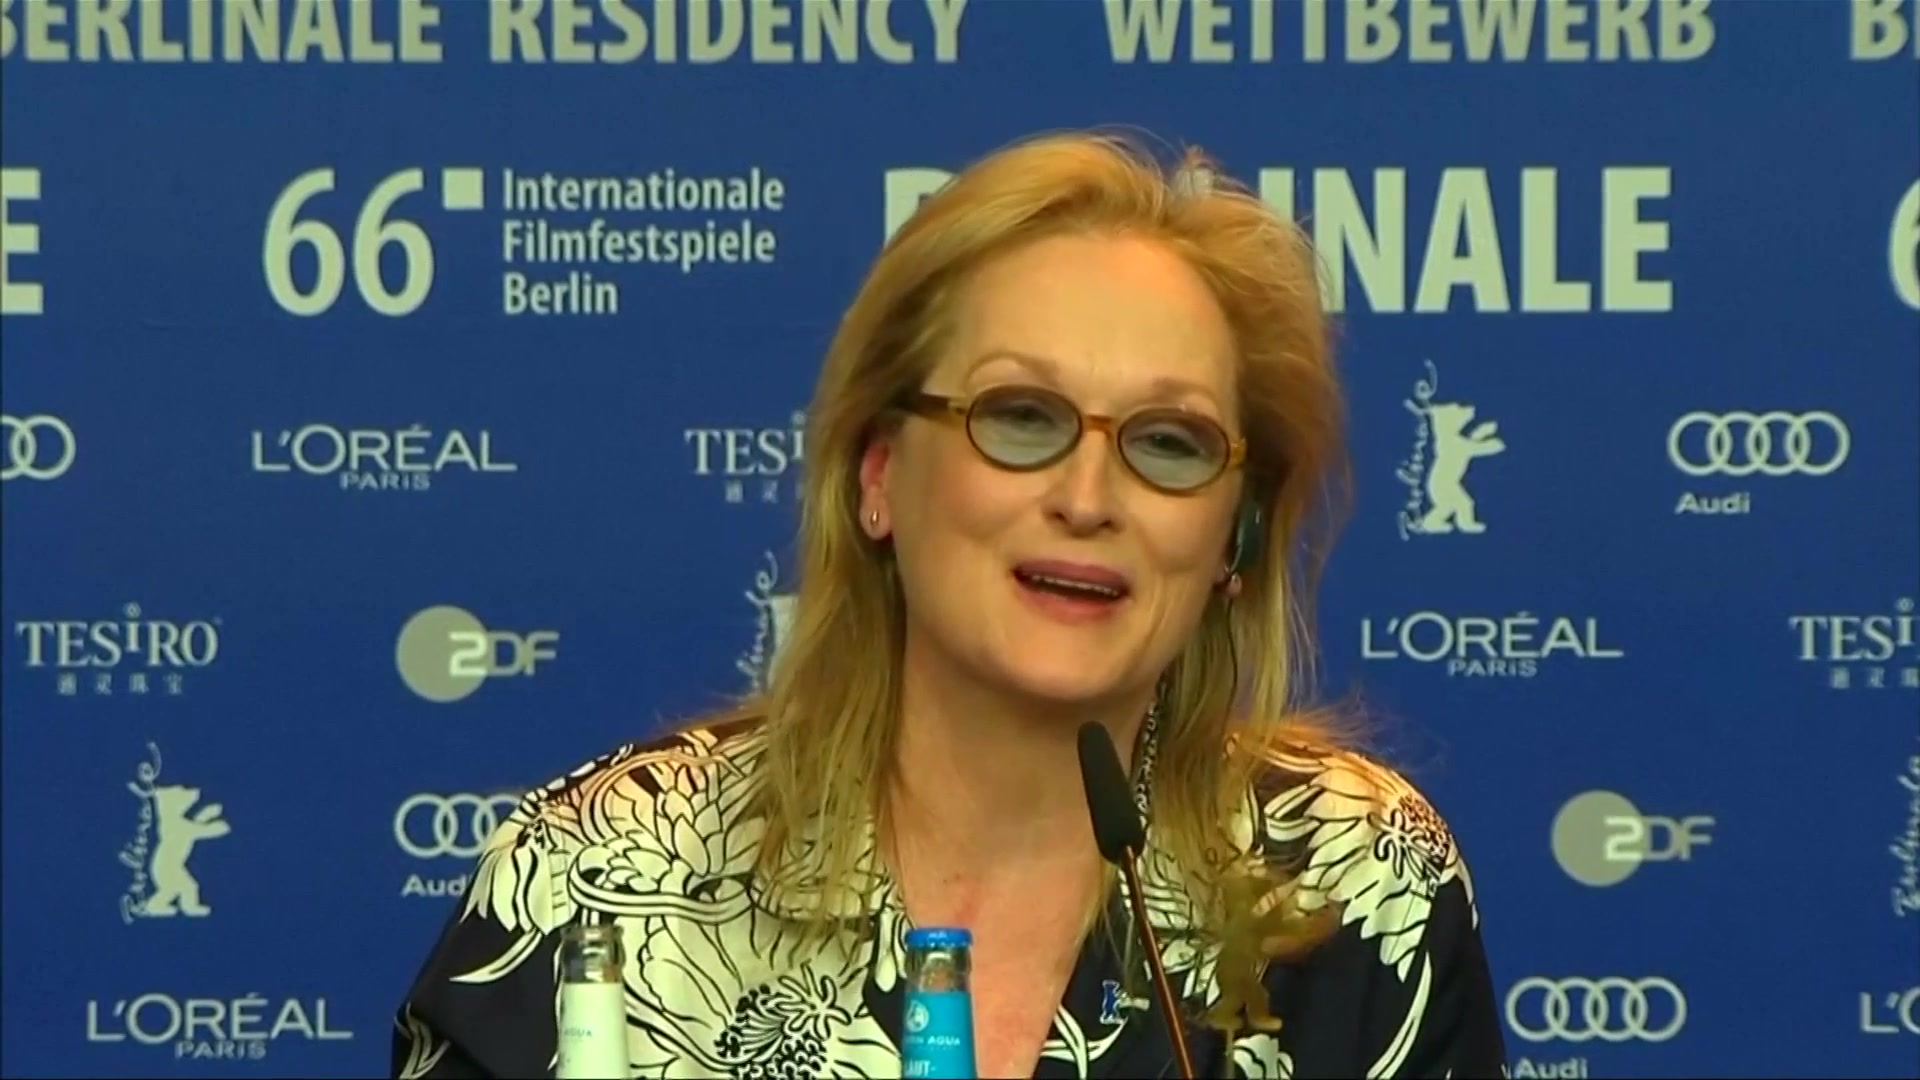 Meryl Streep Clarifies 'We're All Africans' Remark